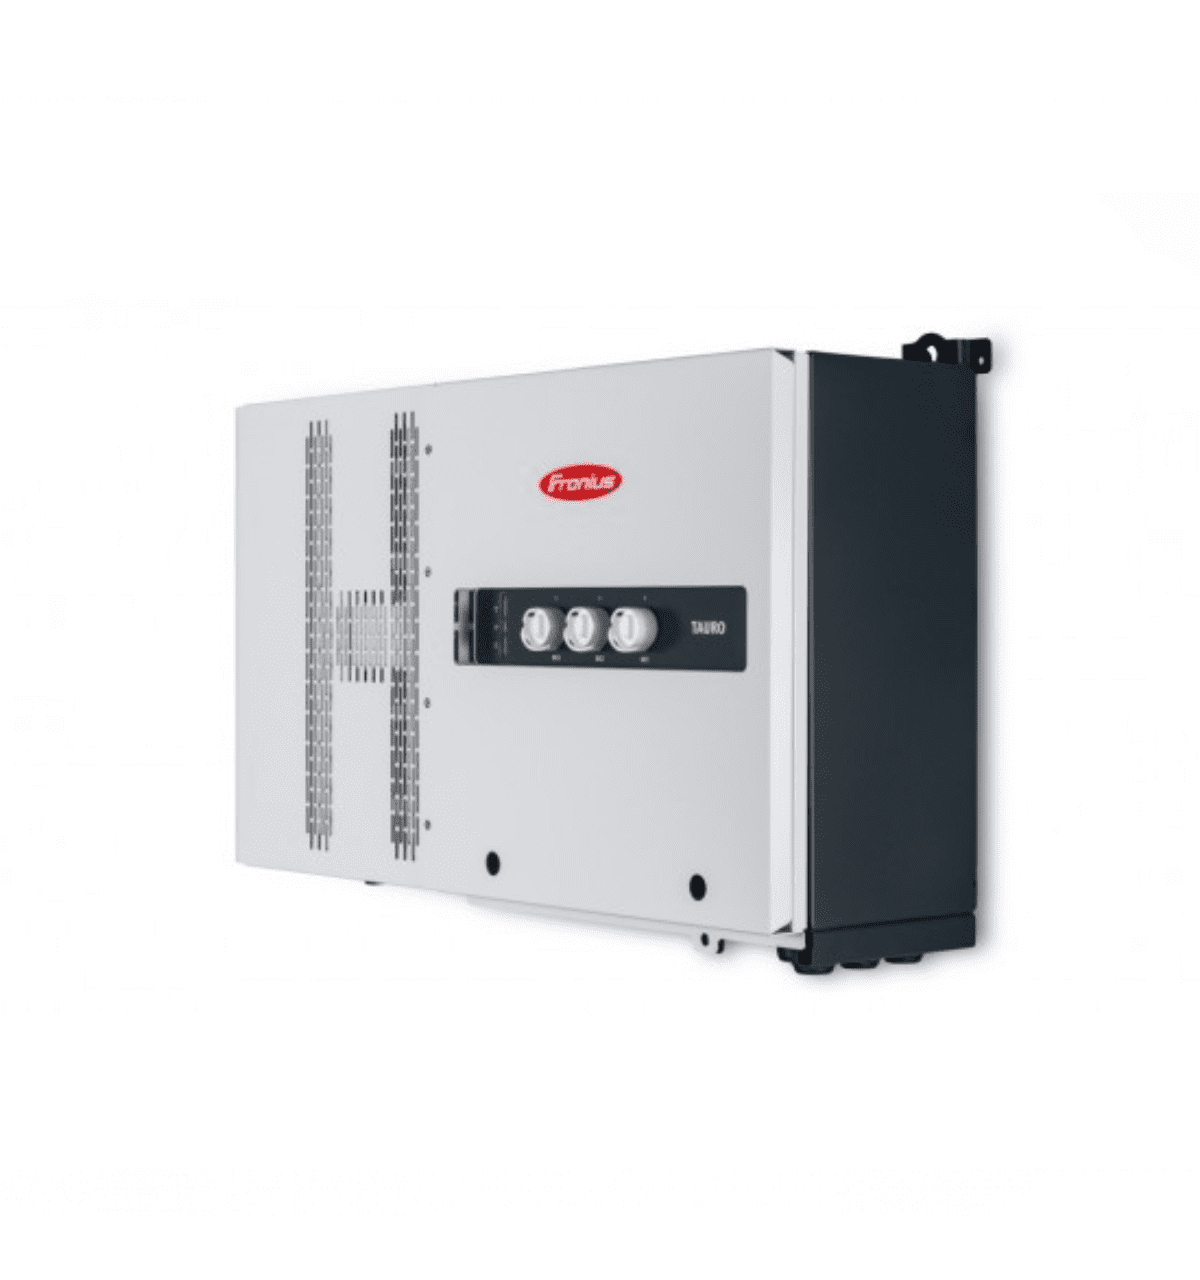 Buy Fronius Tauro Grid Tie String Inverter @ DIY Solar Energy Store for Sale At Best Price